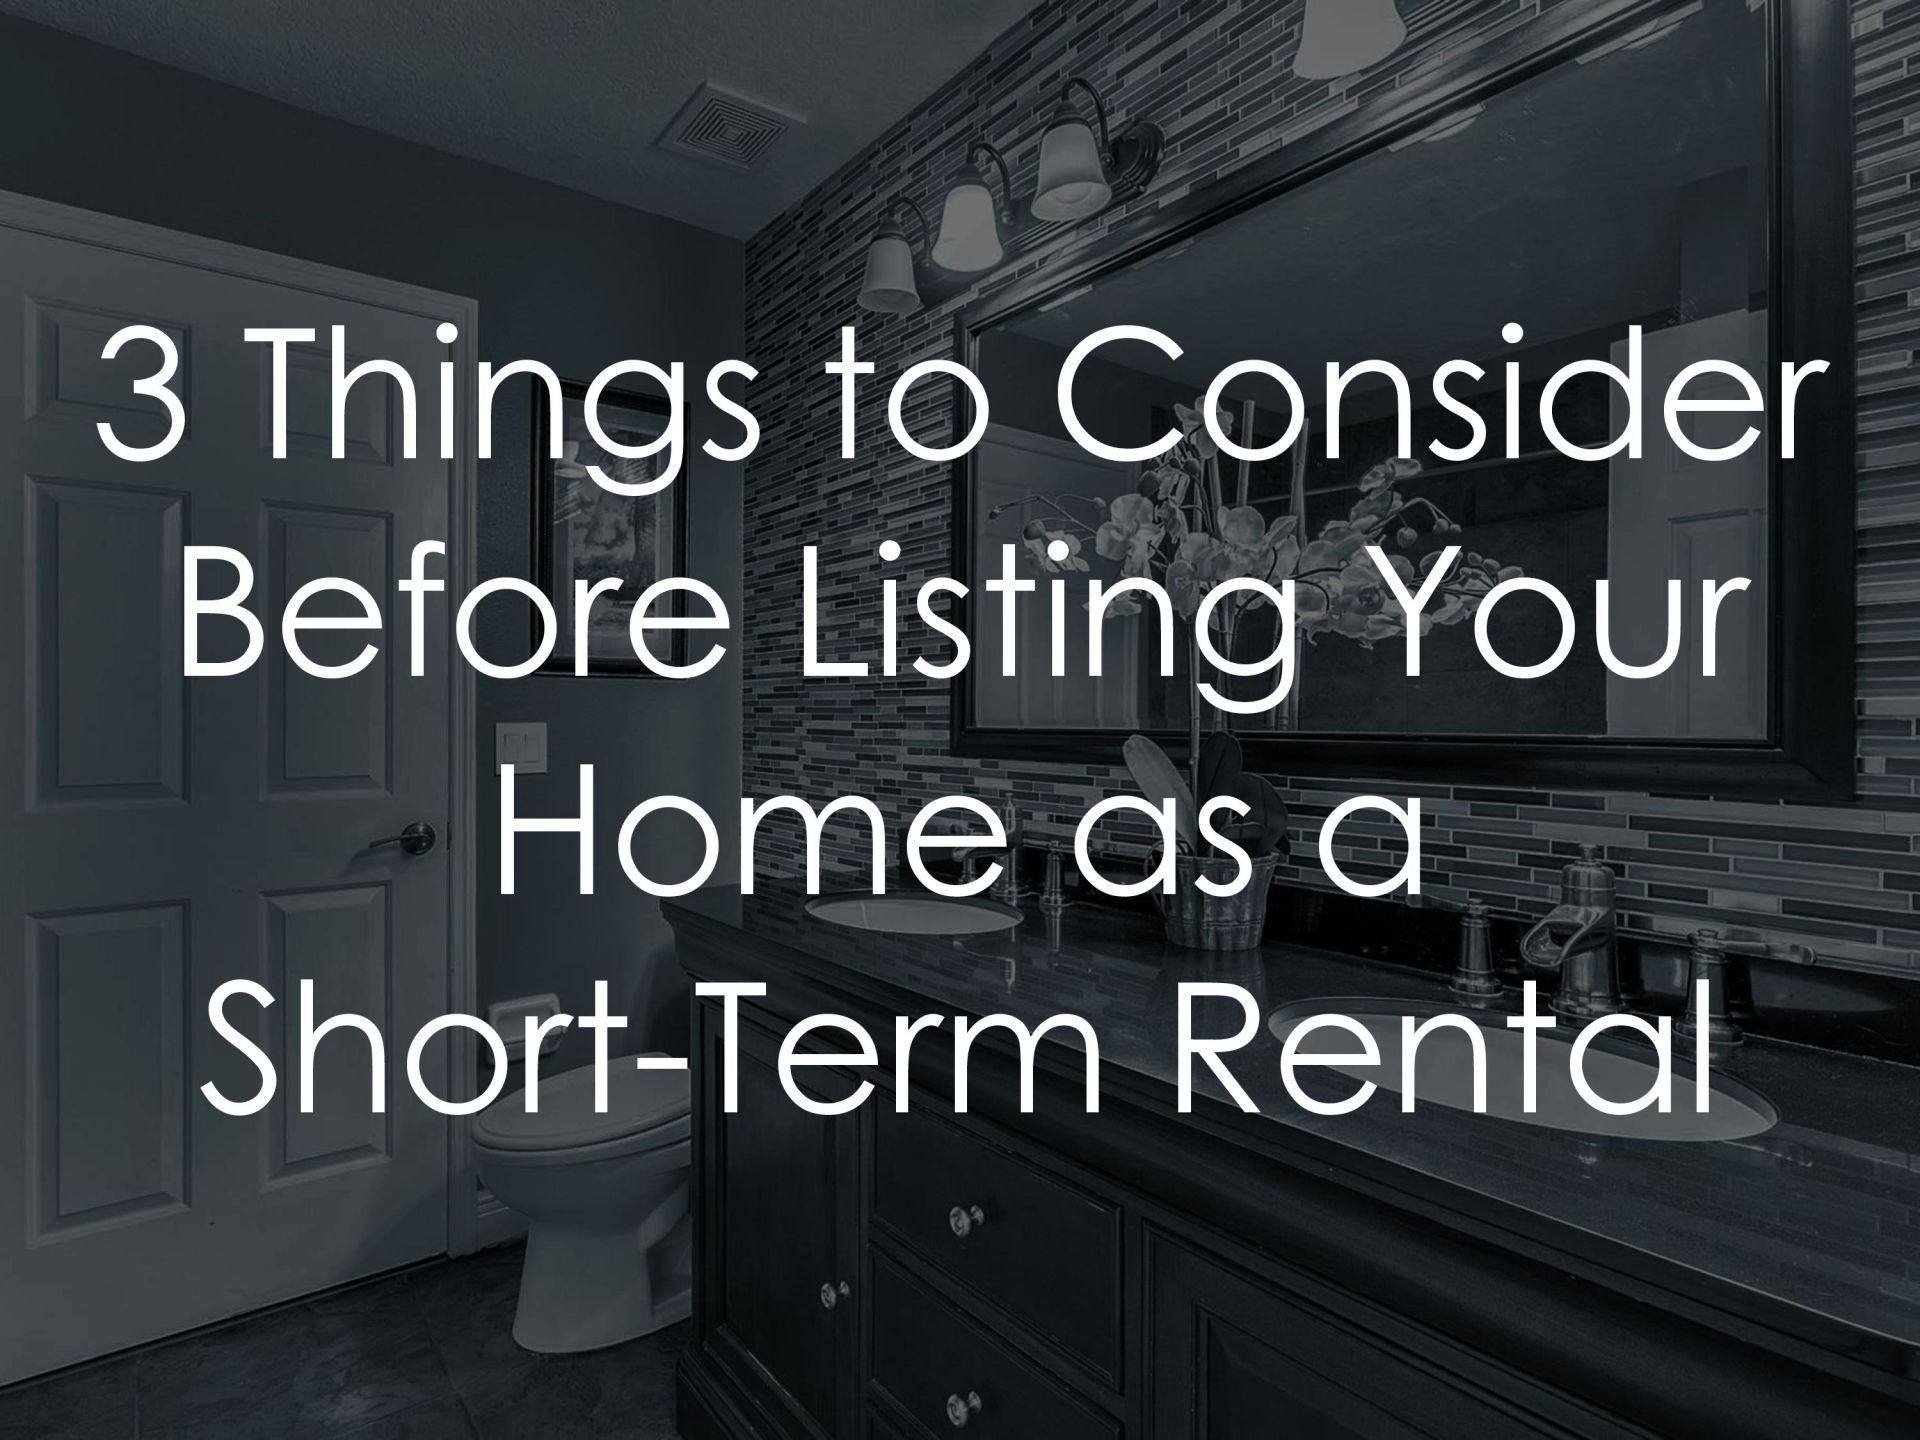 Listing Your Home as a Short-Term Rental